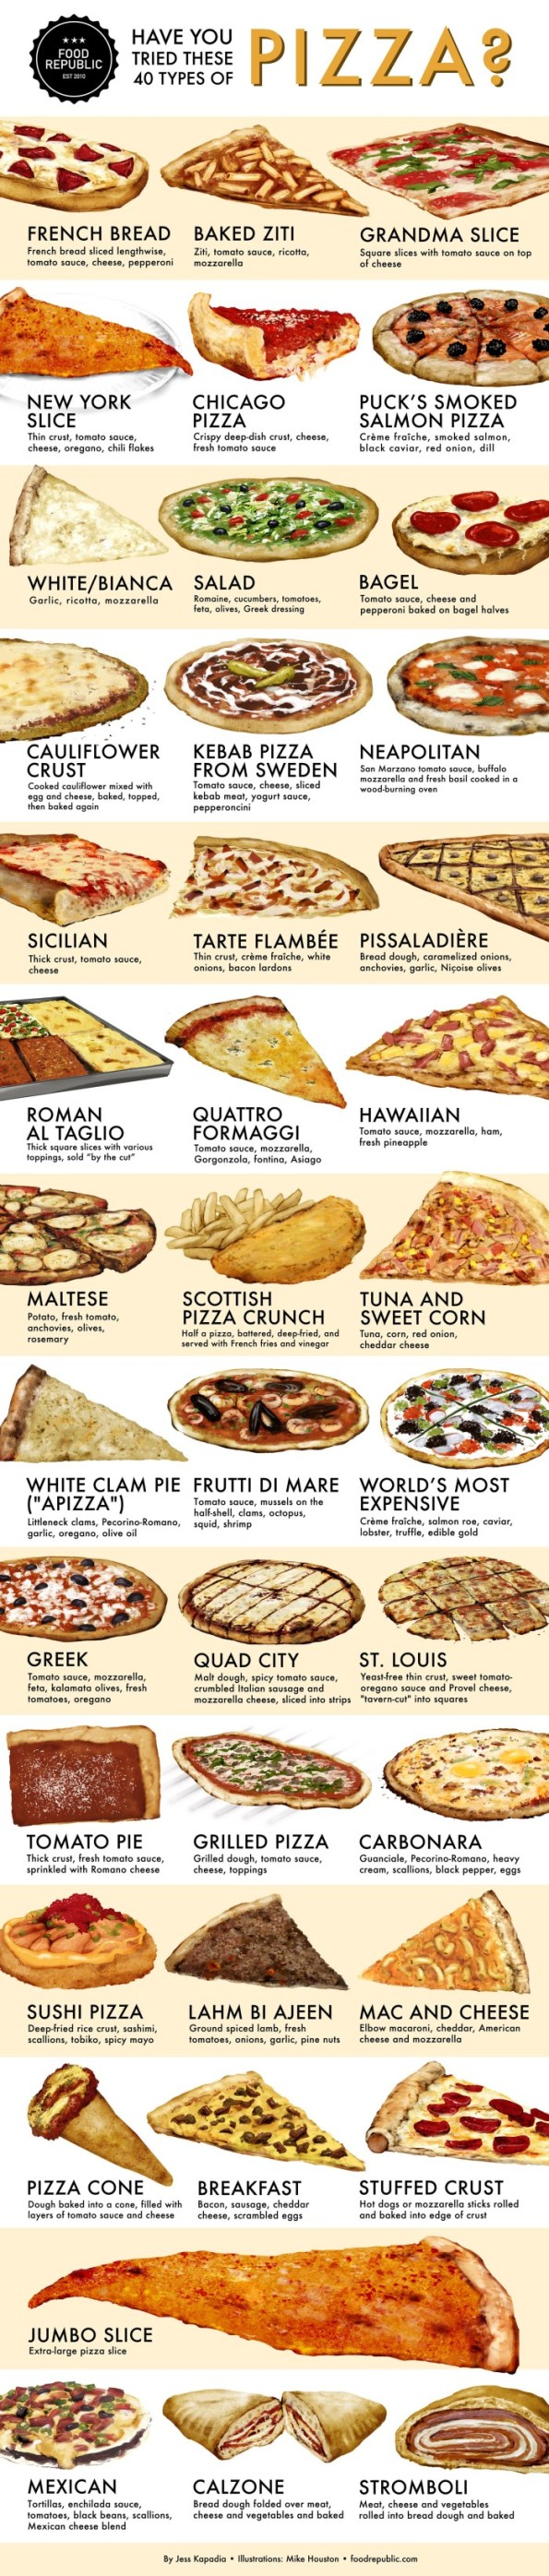 pizza-chart-medium